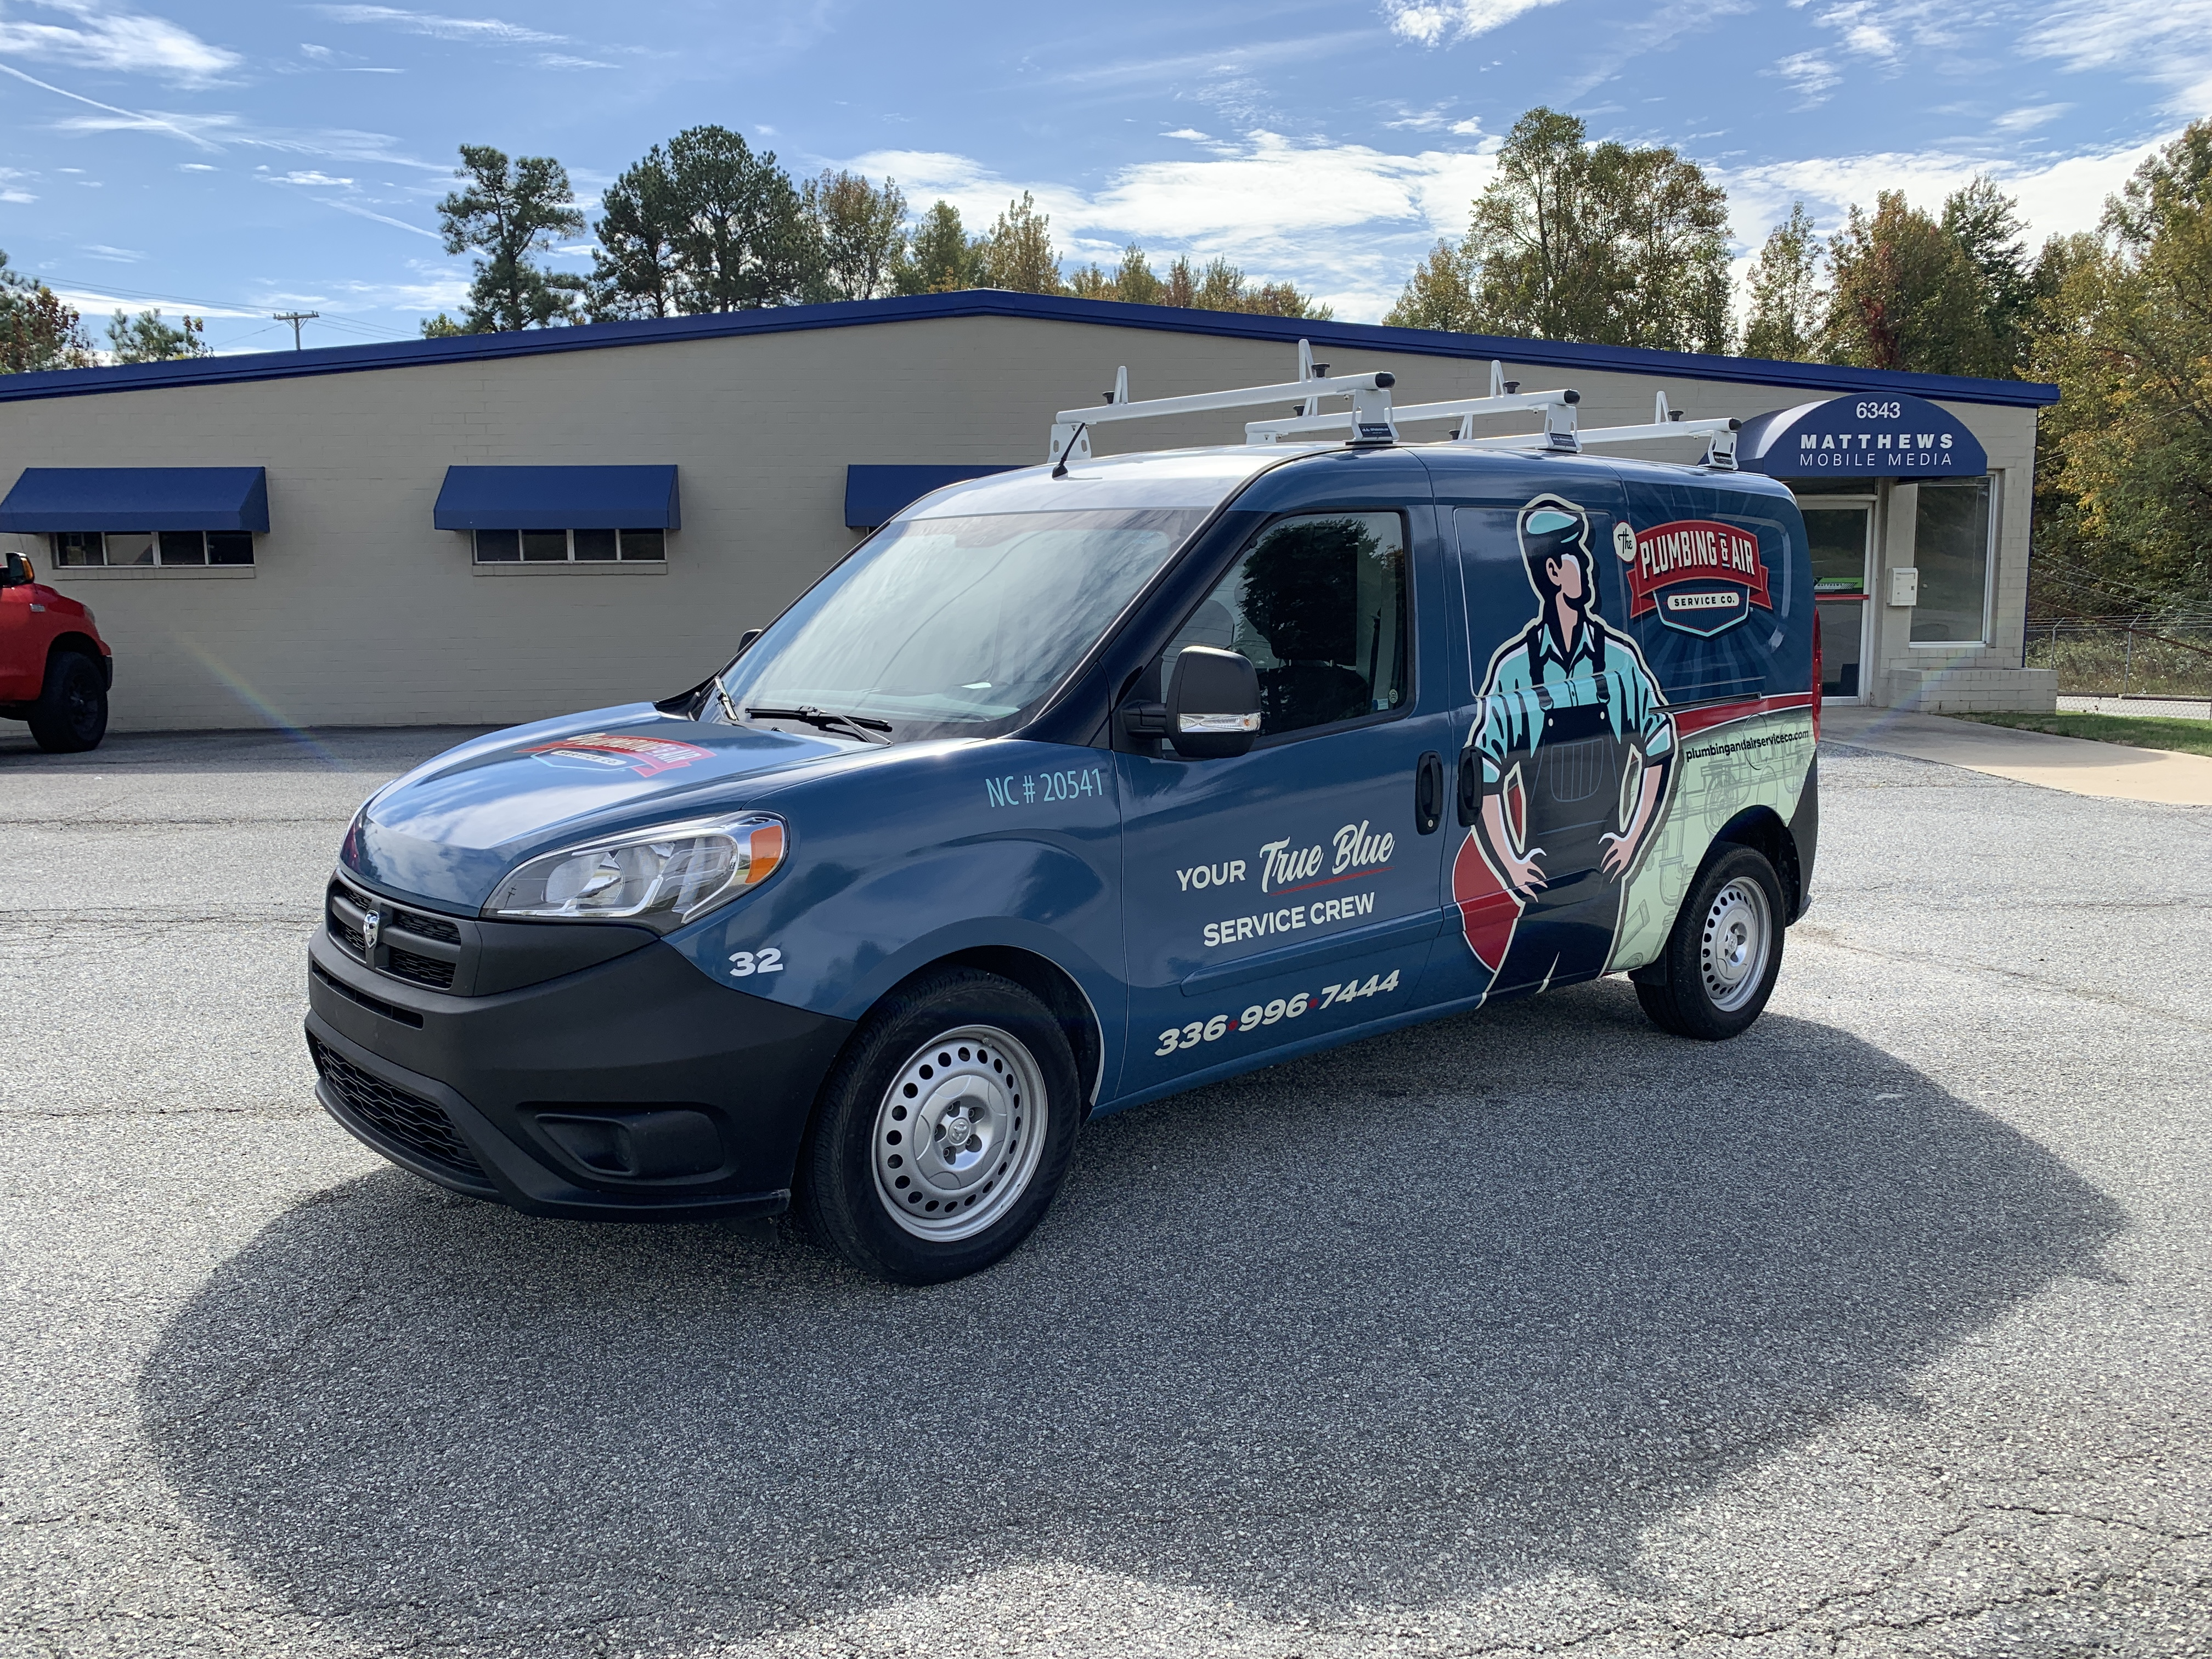 The Plumbing and Air Service Company van